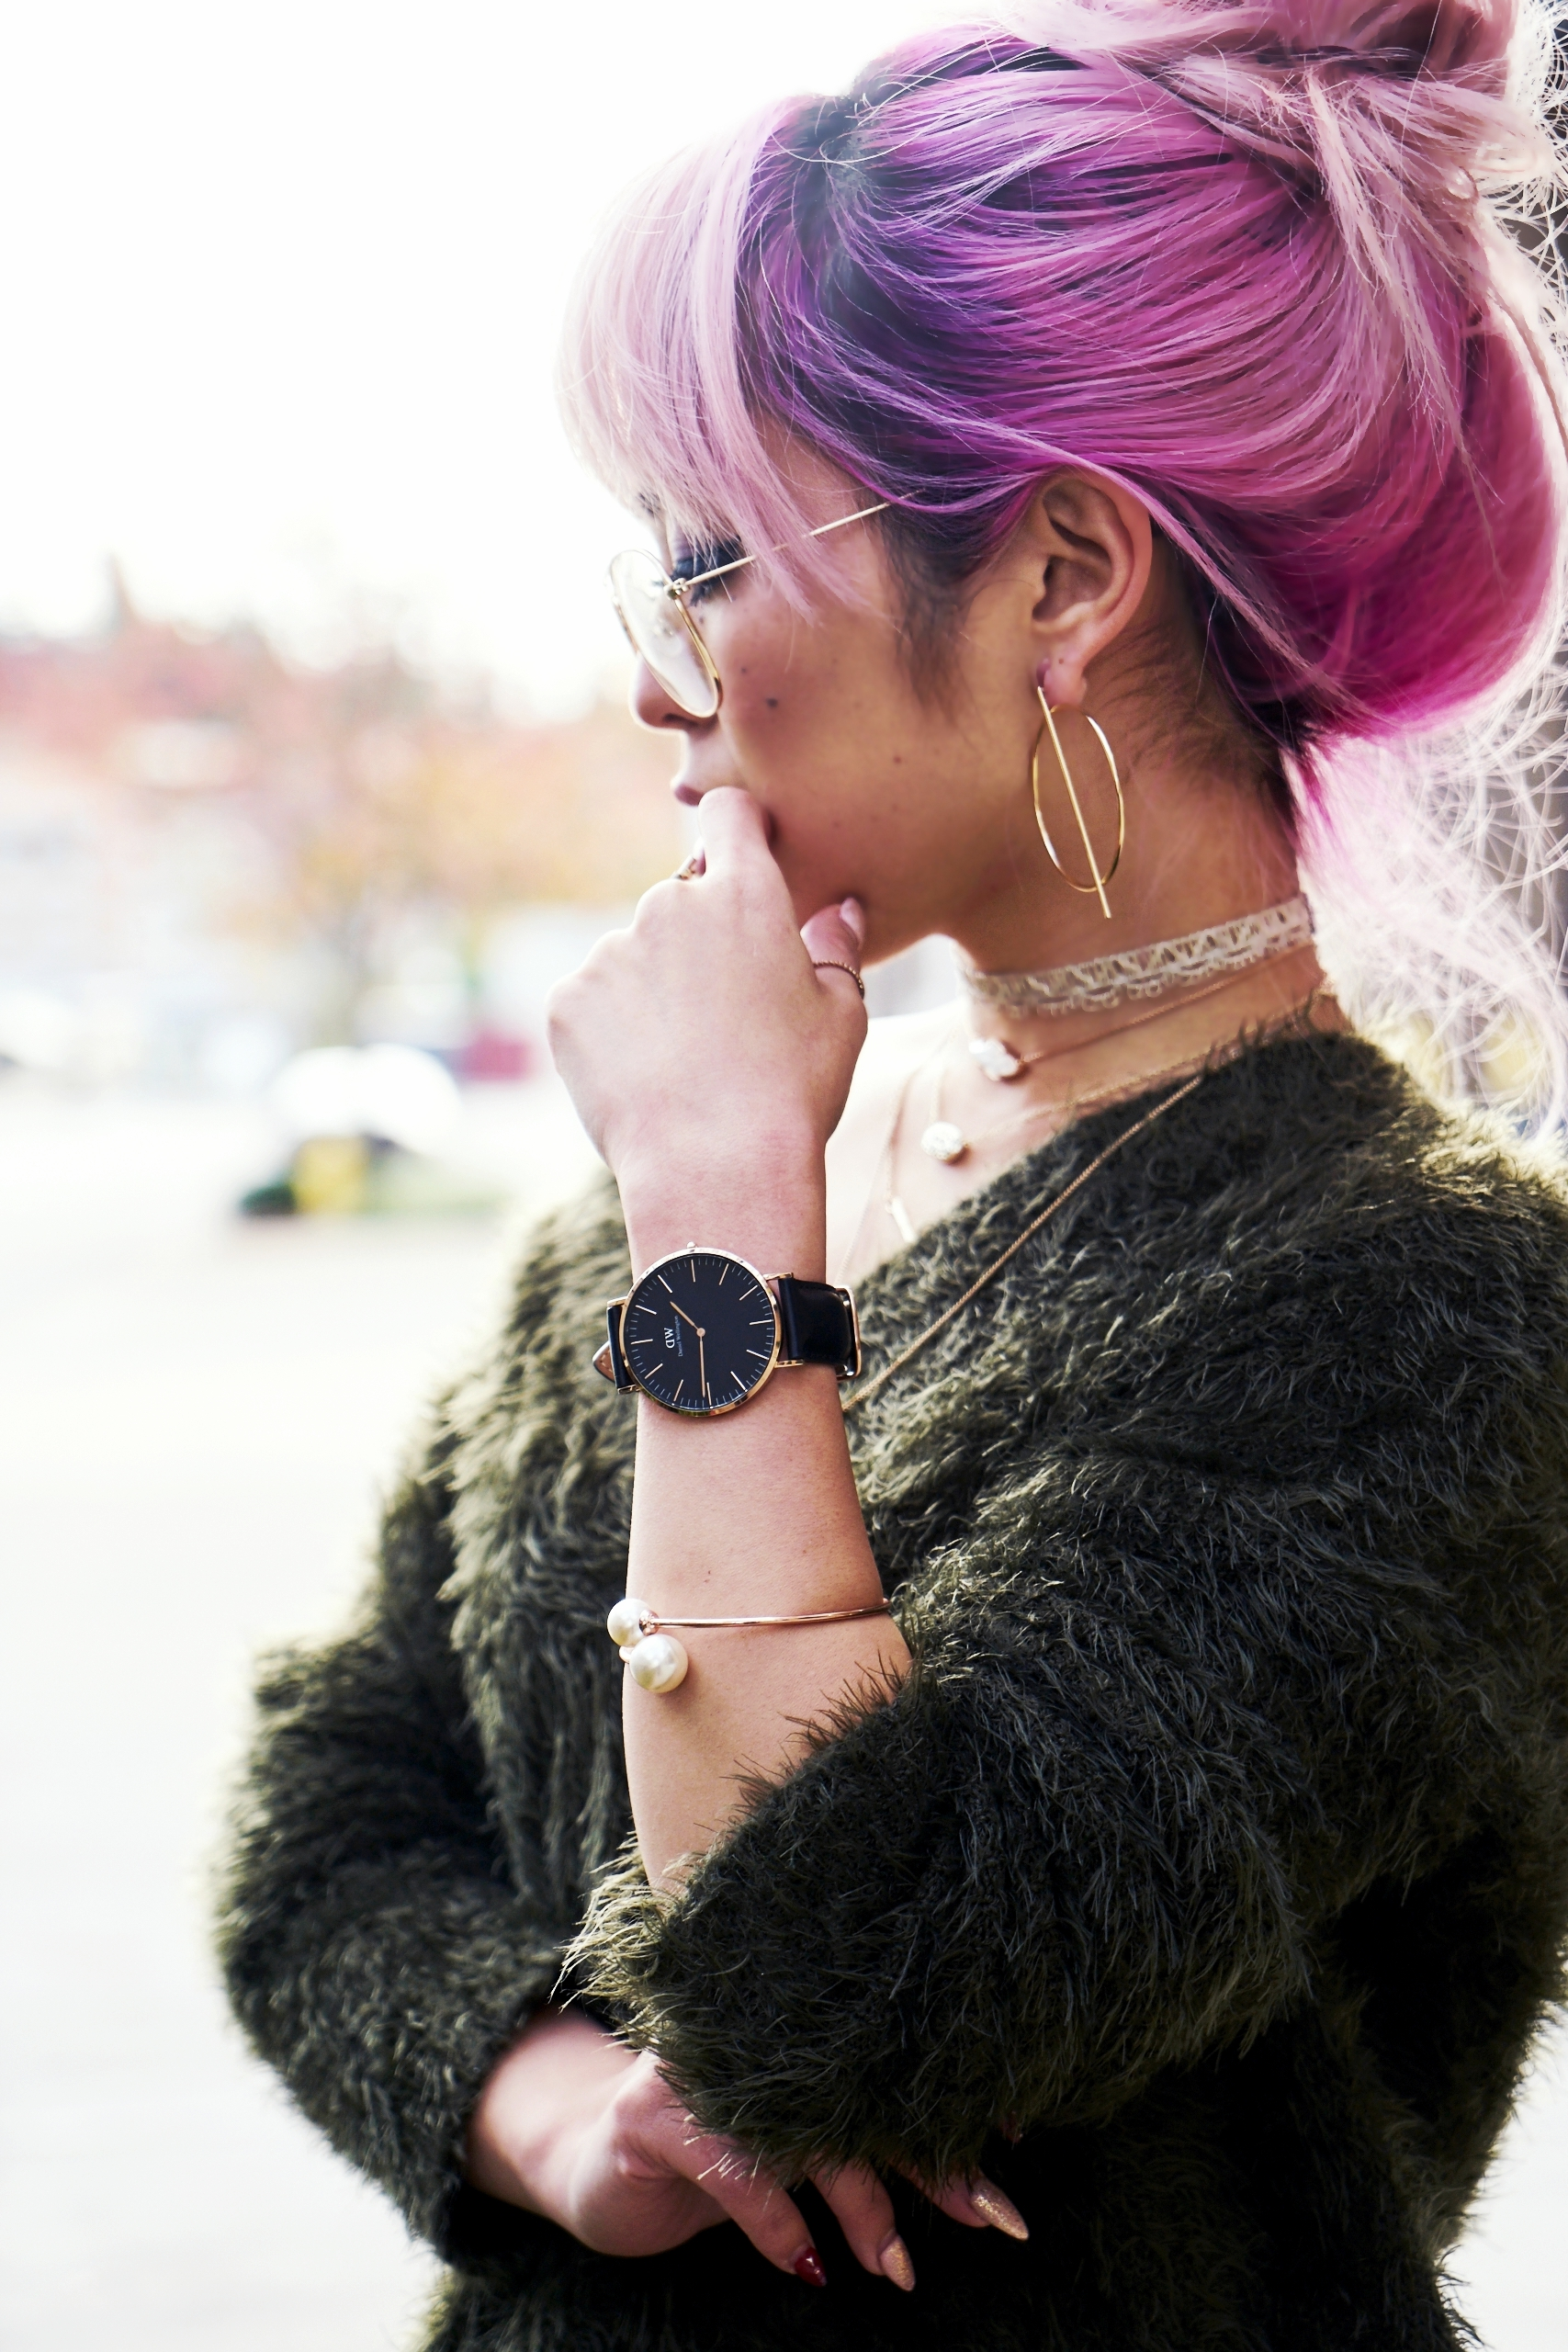 H&M olive chunky sweater-H&M cropped trousers-ASOS python lace-up pumps-ZARA navy velvet bag-mango earrings-Daniel Wellington Watch-Clear Lens aviator-Aika's Love Closet-Seattle Style blogger-japanese-pink hair-colored hair 5